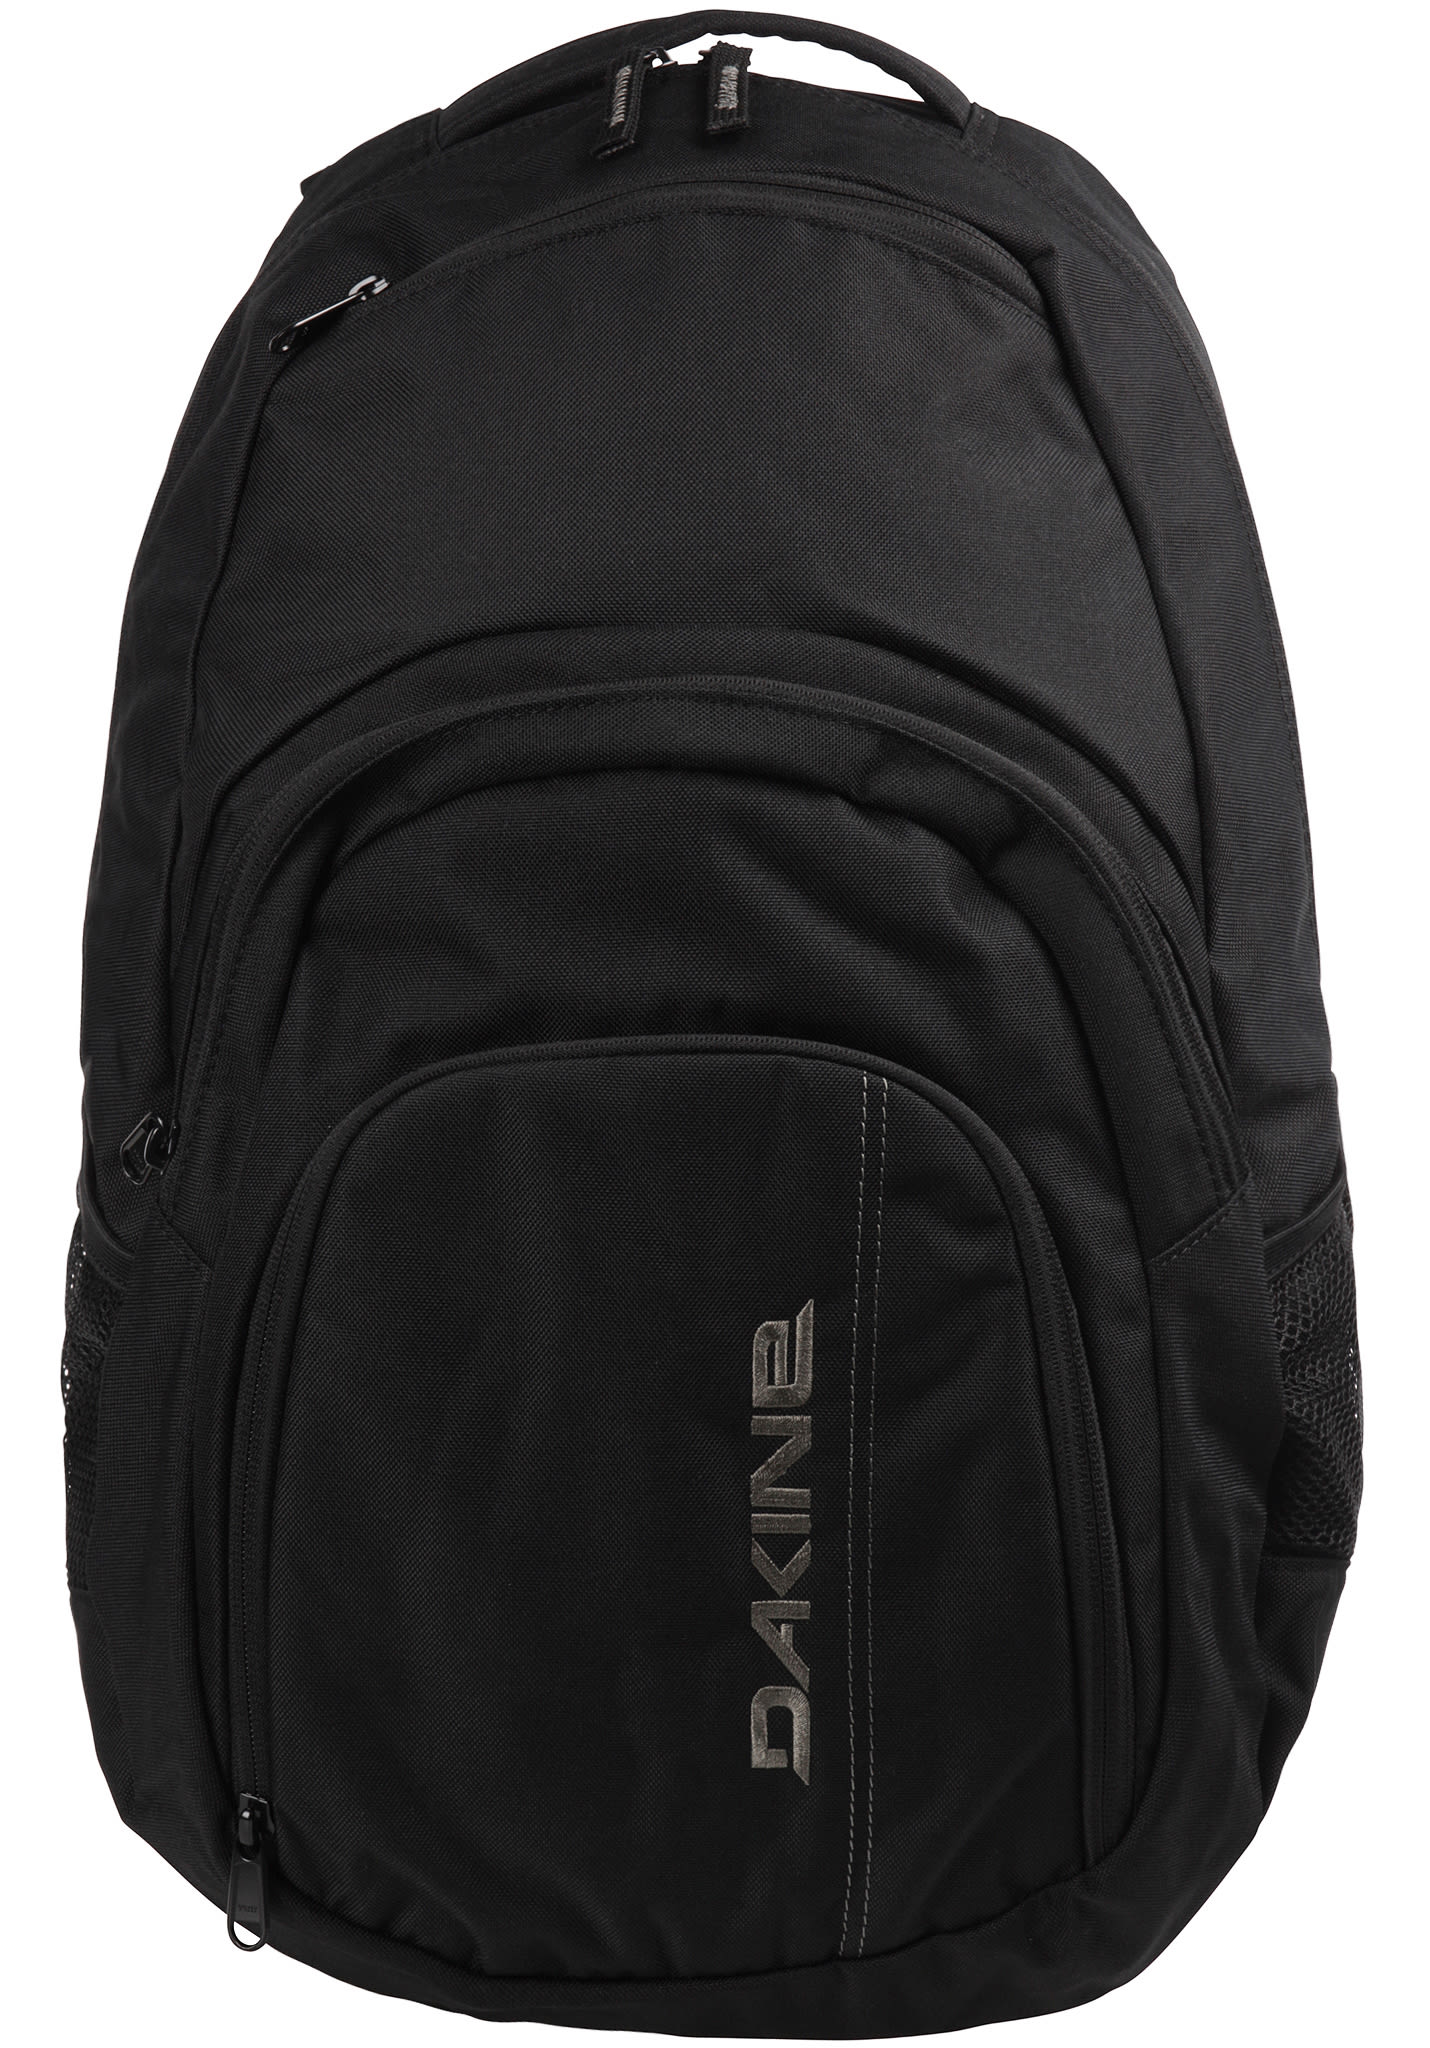 dakine rucksack campus unisex erwachsene campus 25l black 33 liter botschaft. Black Bedroom Furniture Sets. Home Design Ideas